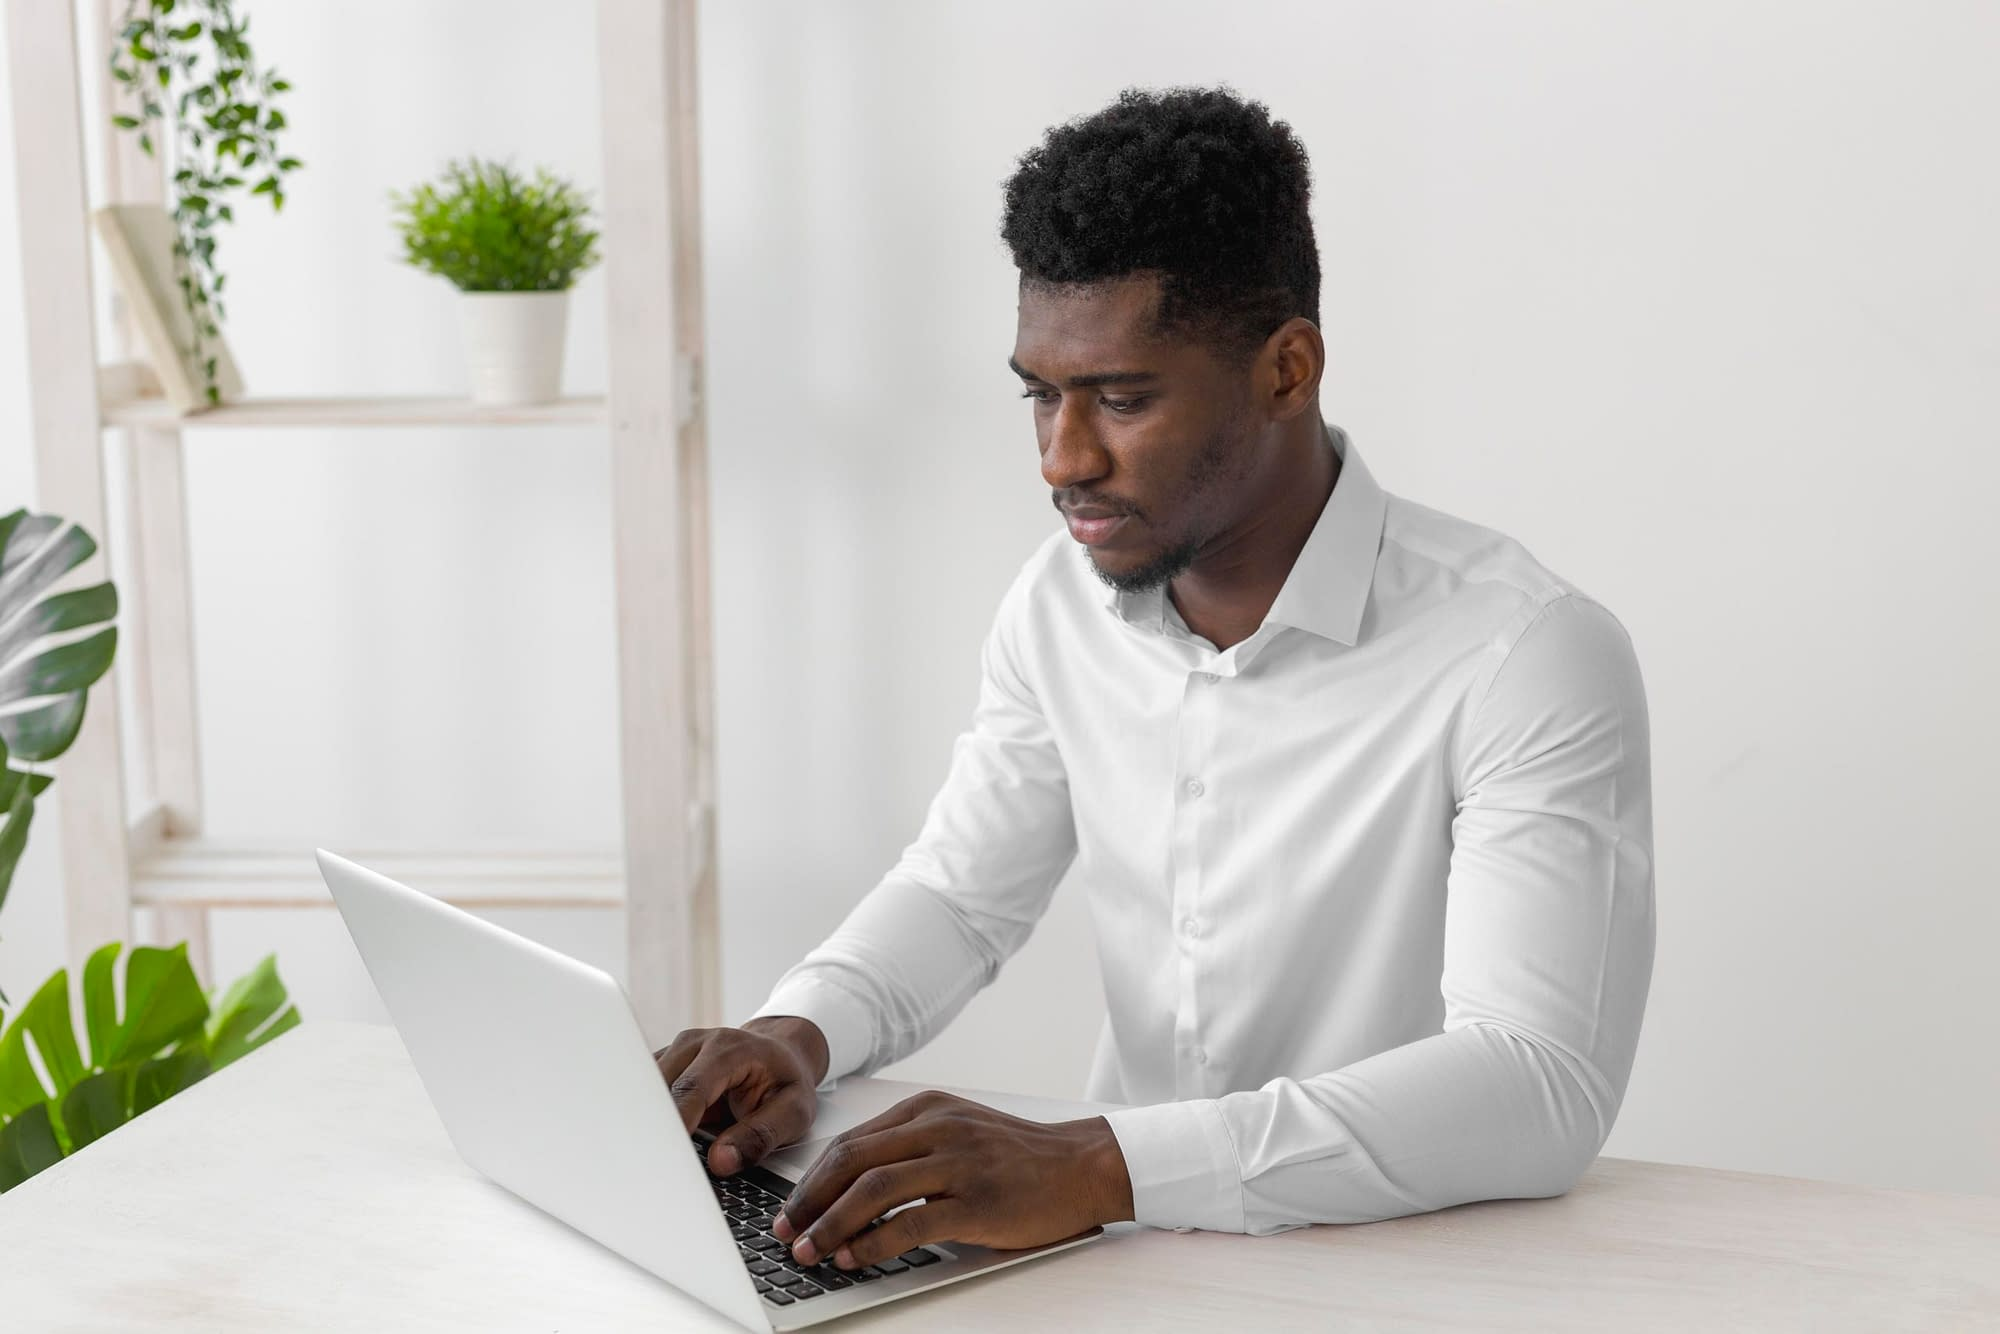 african american man working laptop scaled